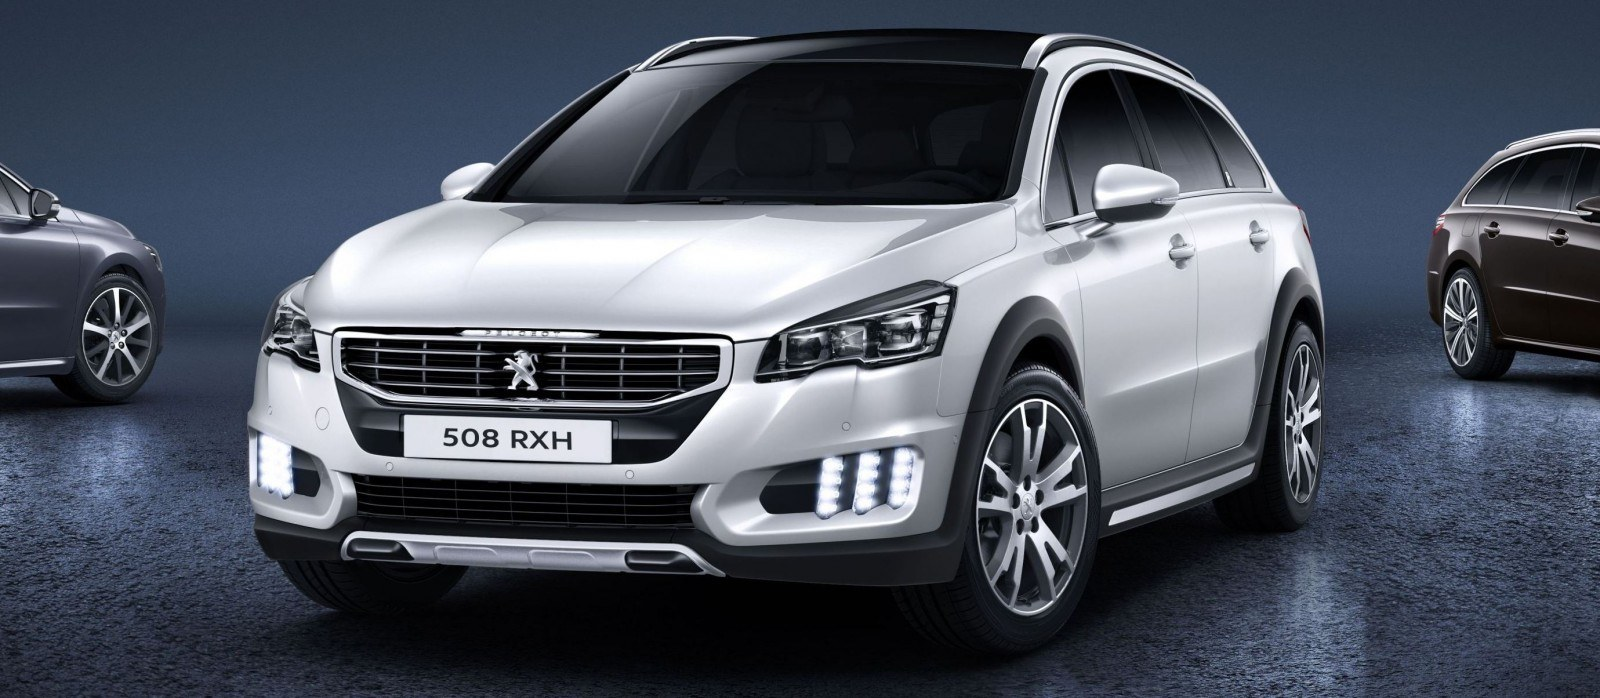 2015 Peugeot 508 Facelifted With New LED DRLs, Box-Design Beams and Tweaked Cabin Tech 1